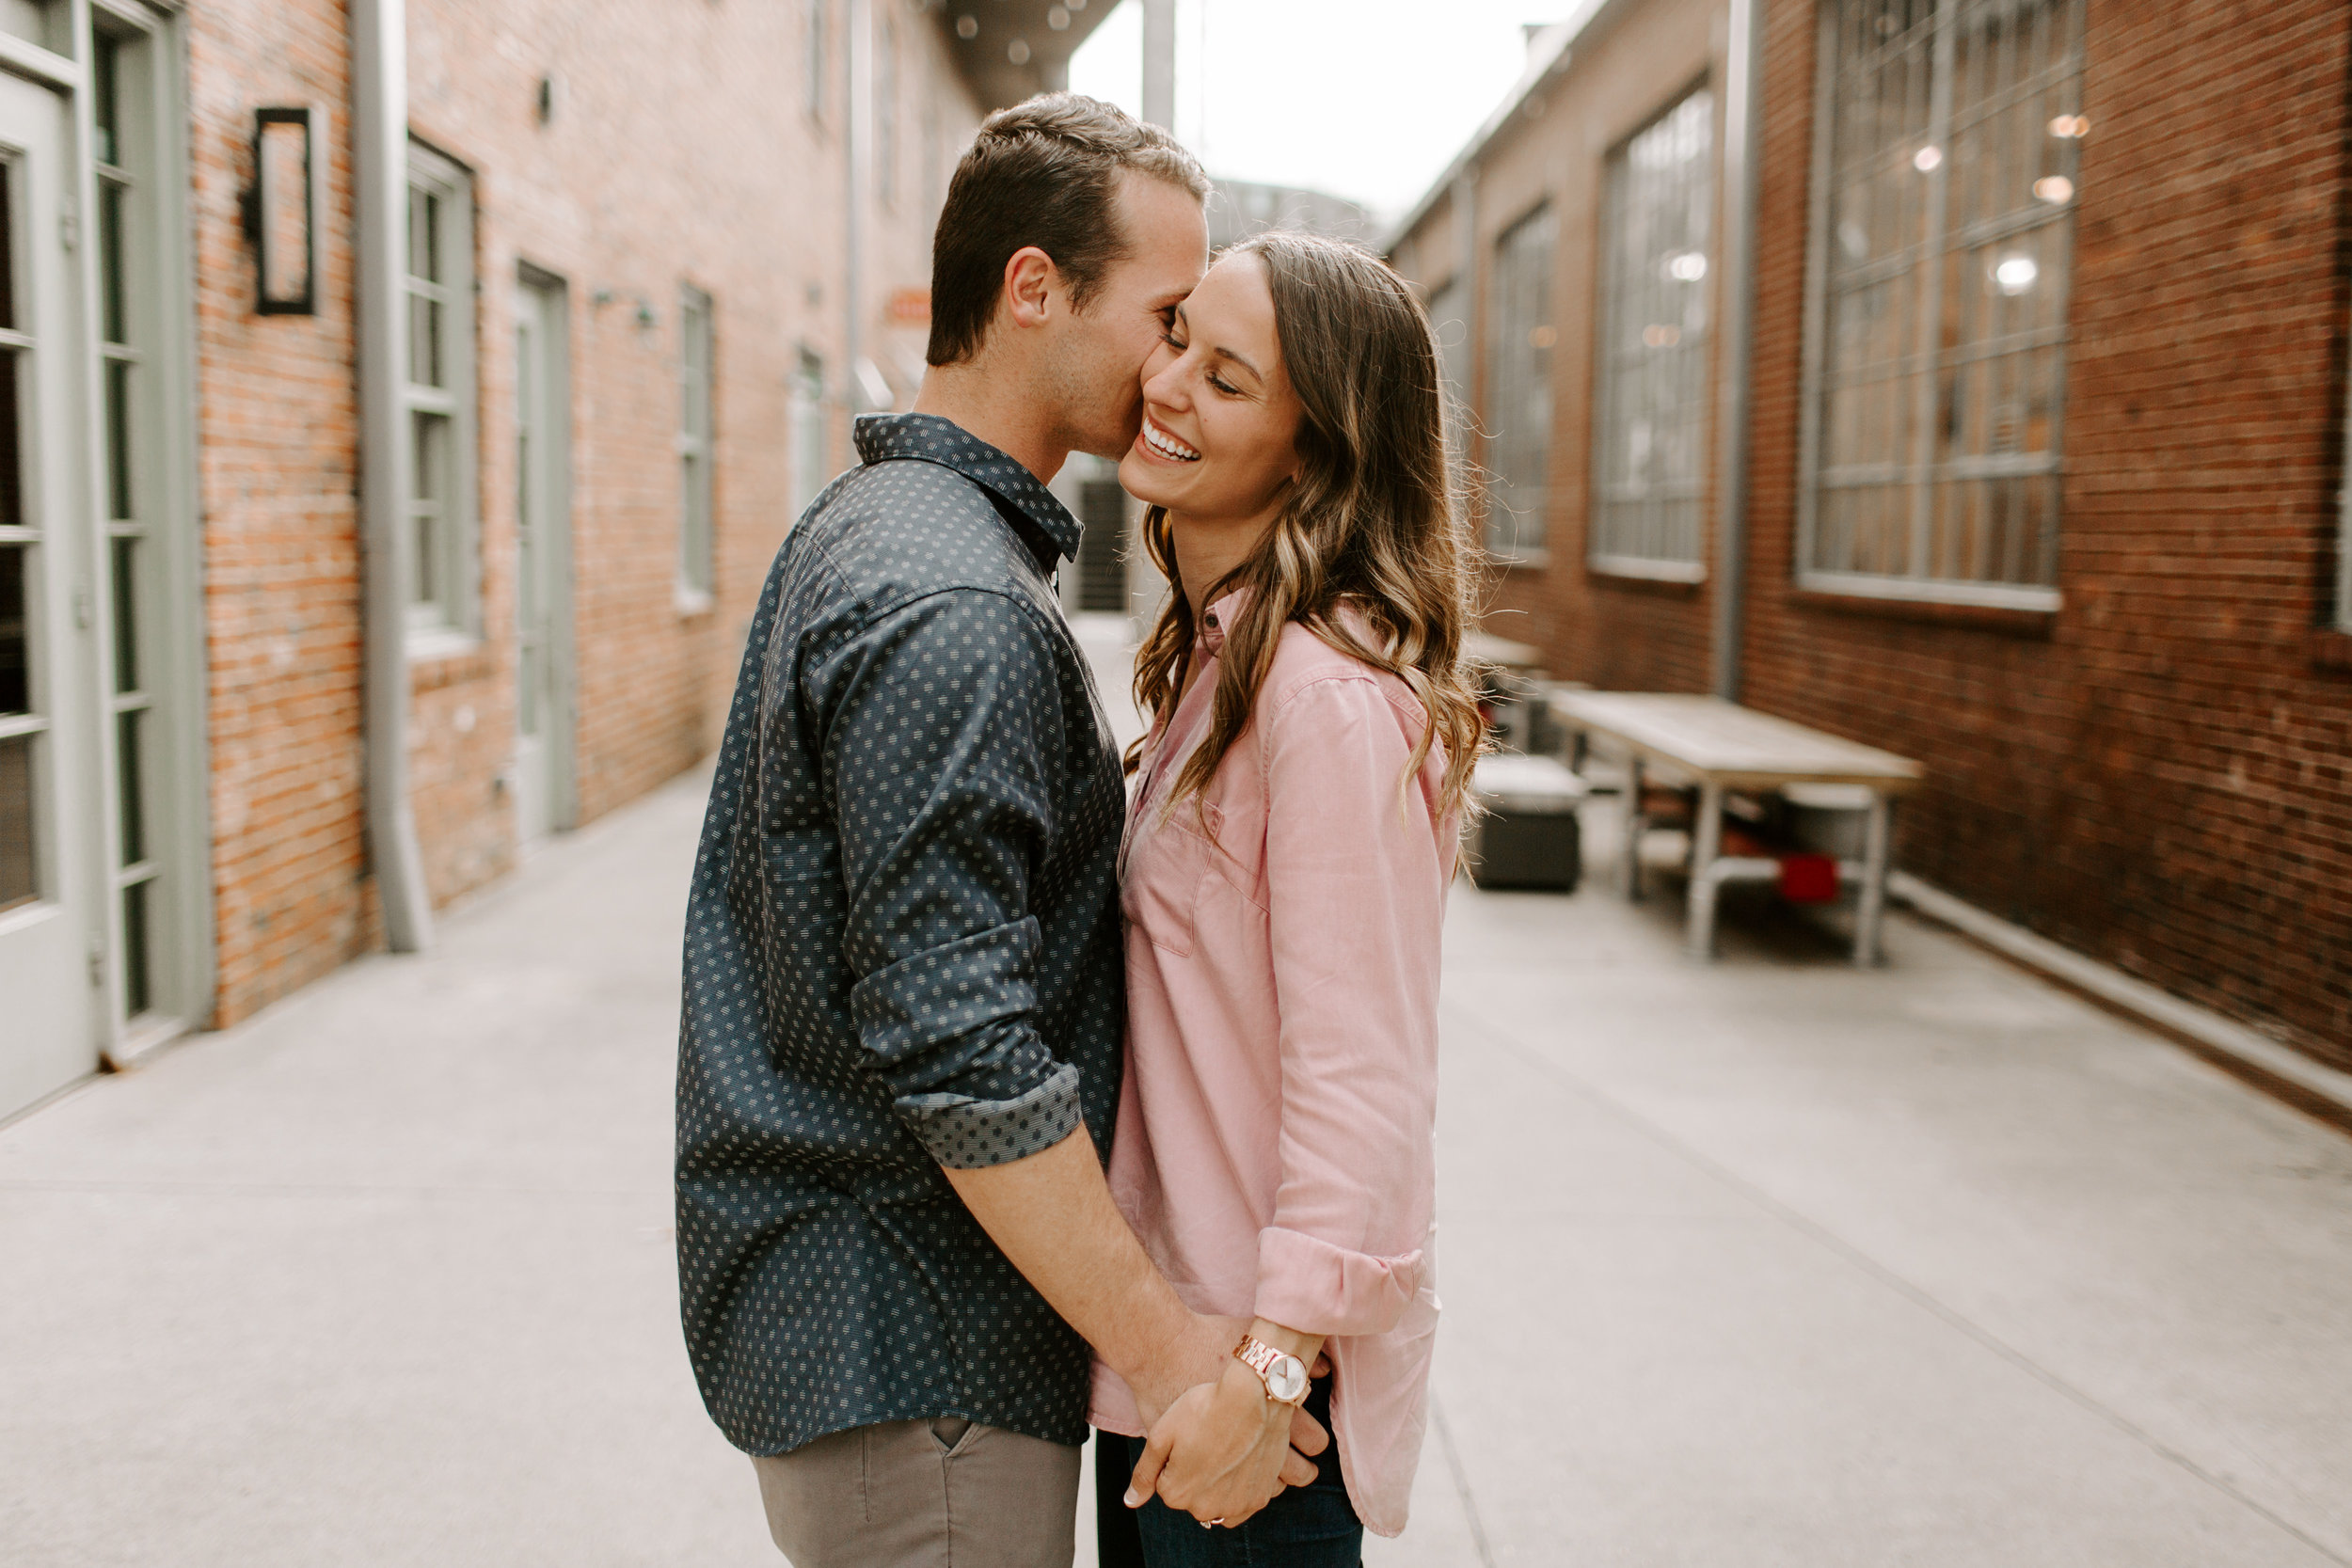 2018.03.16_kayleematt_nashville_engagement_elissavossphotography_previews_01.jpg